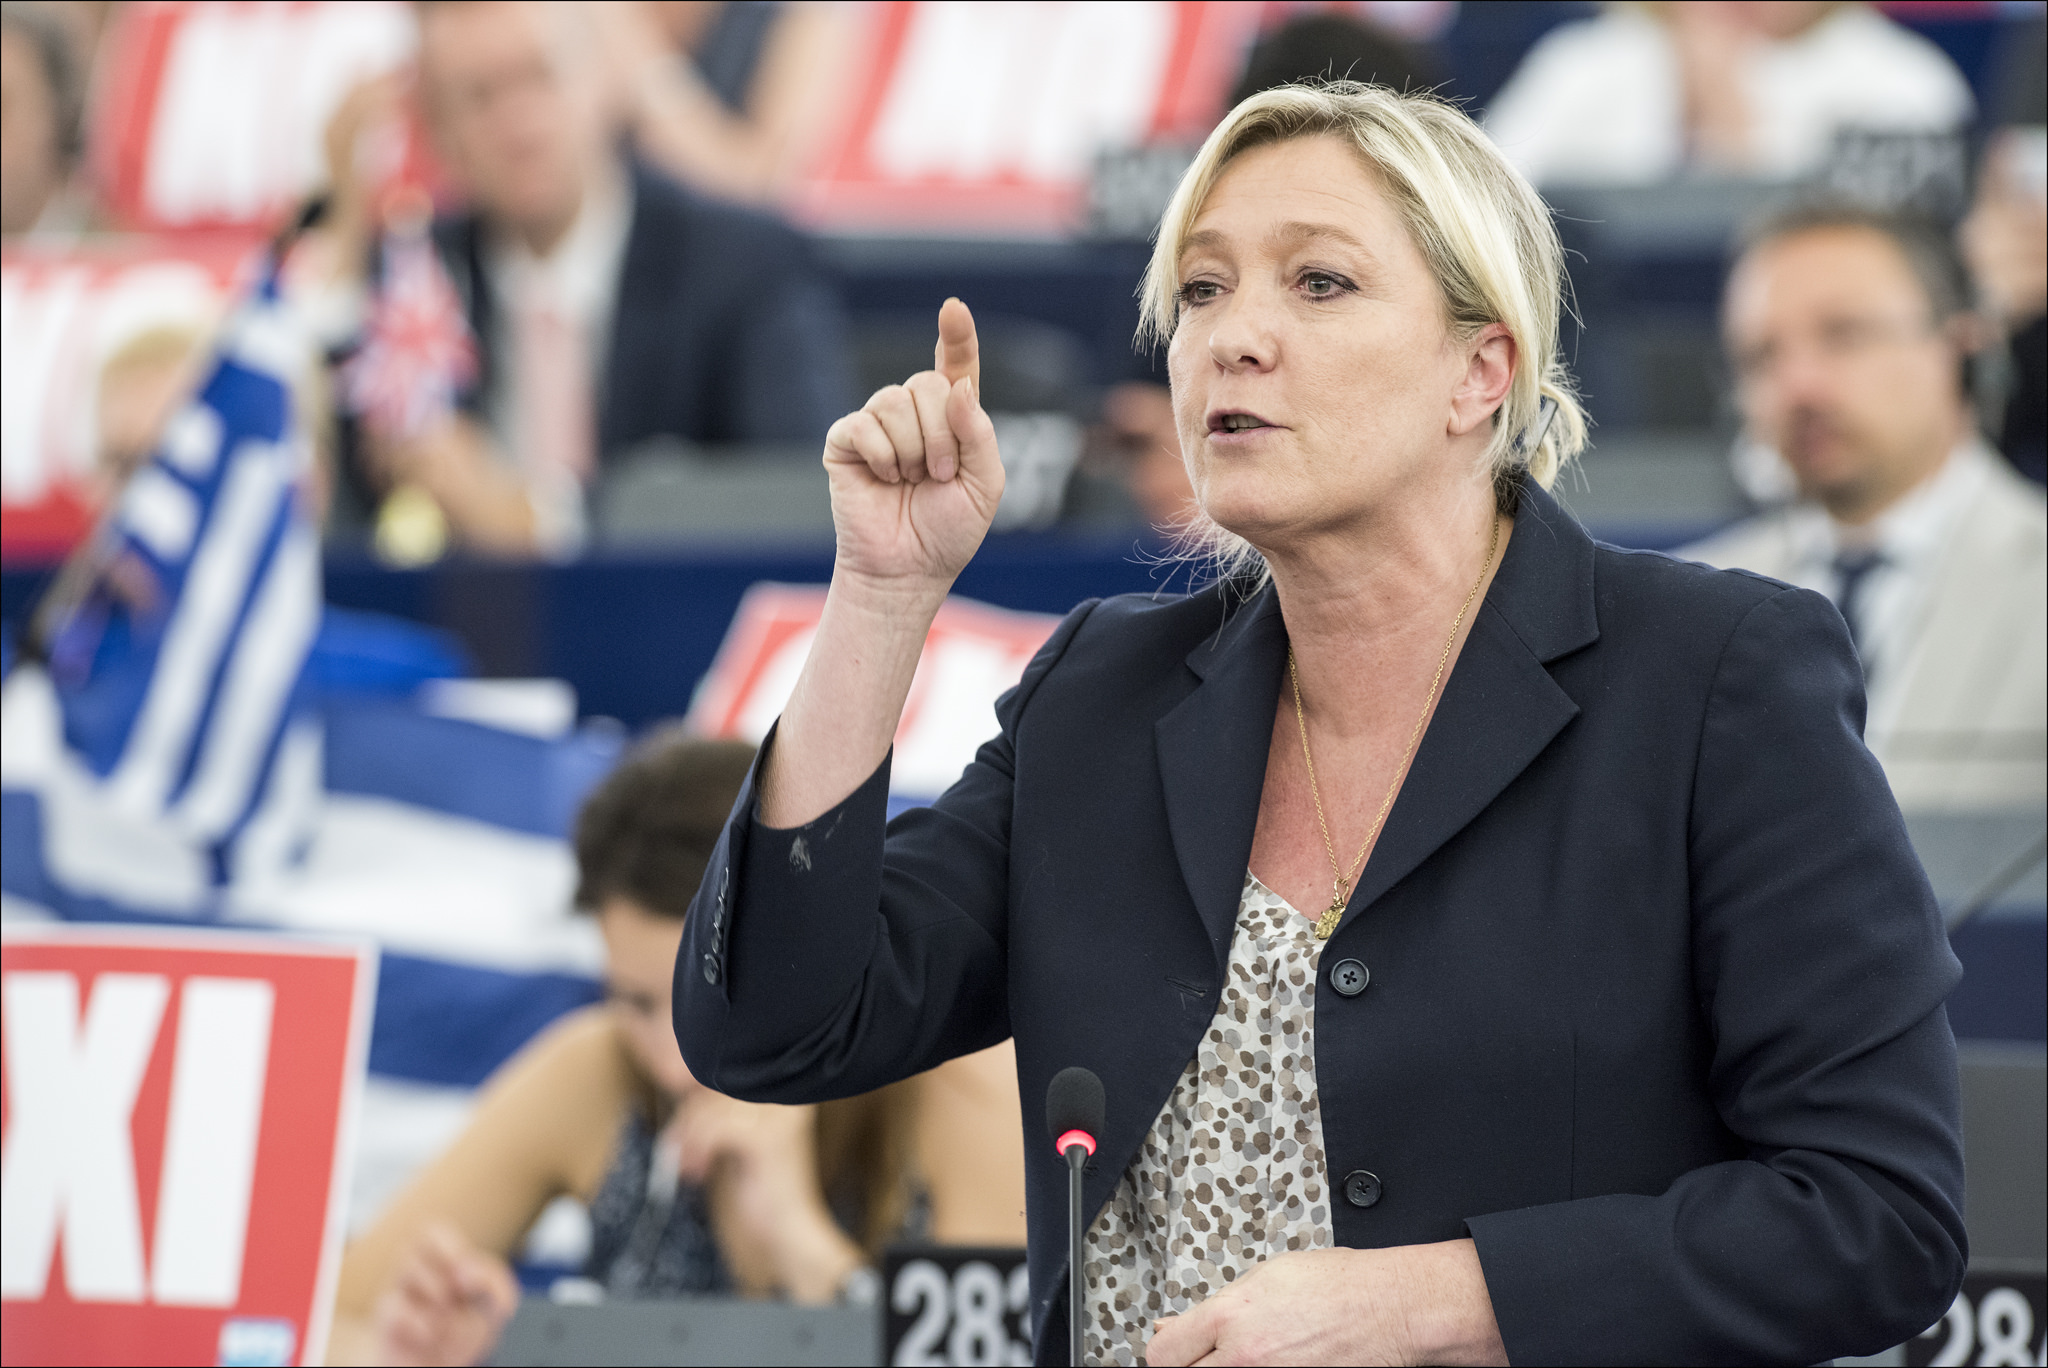 Marine Le Pen at a European Parliamentary debate | CC Flickr: European Parliament